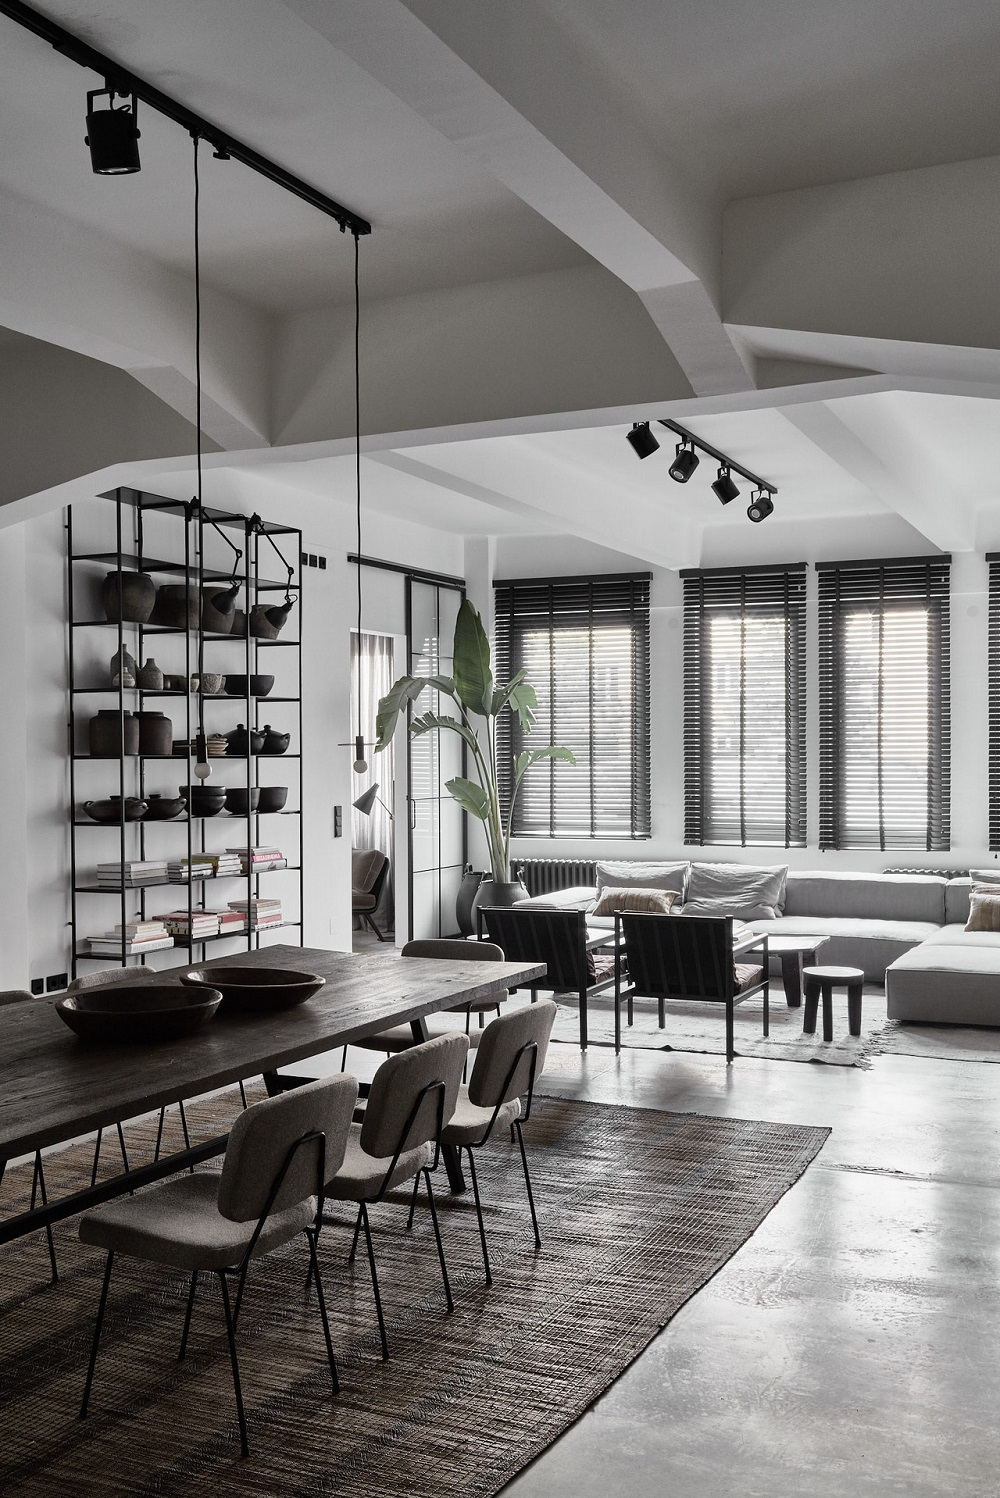 A design space in Vienna designed by Annabell Kutucu